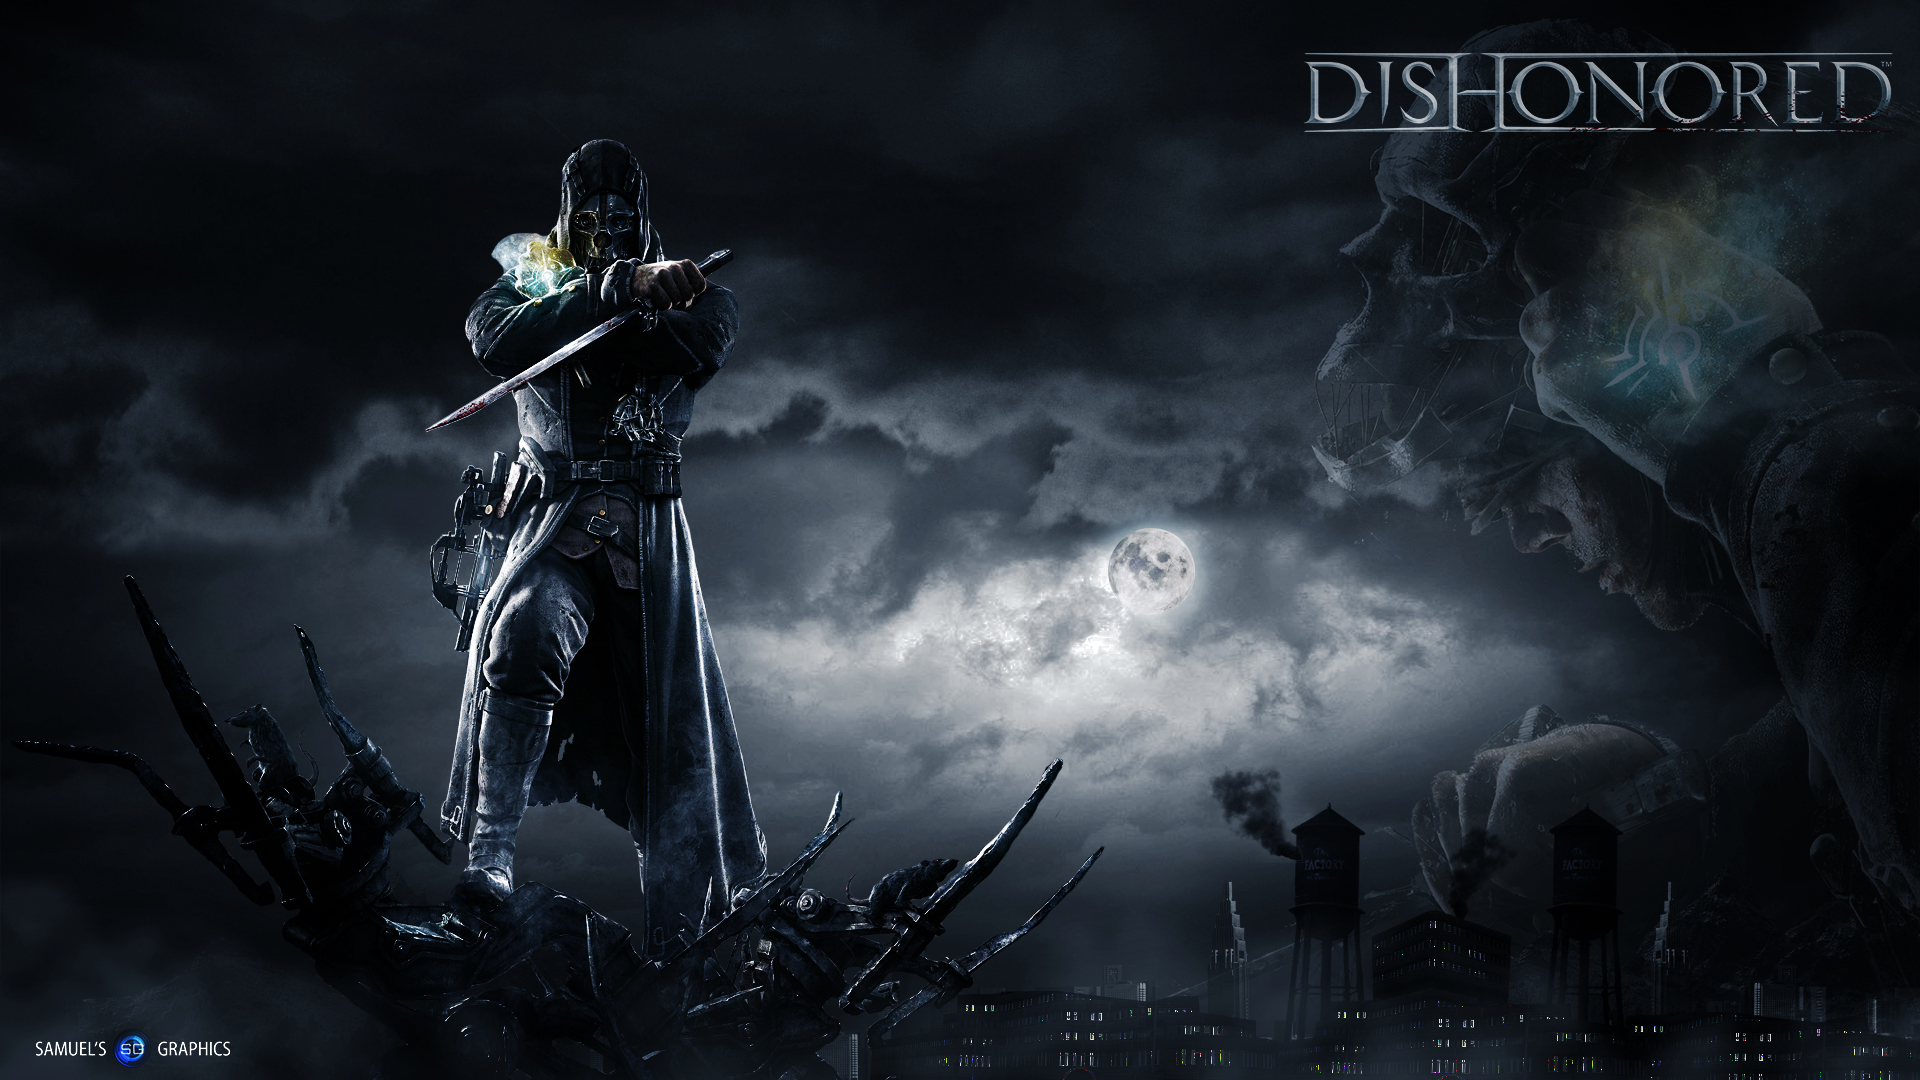 Dishonored HD Wallpaper By Samuels-Graphics On DeviantArt